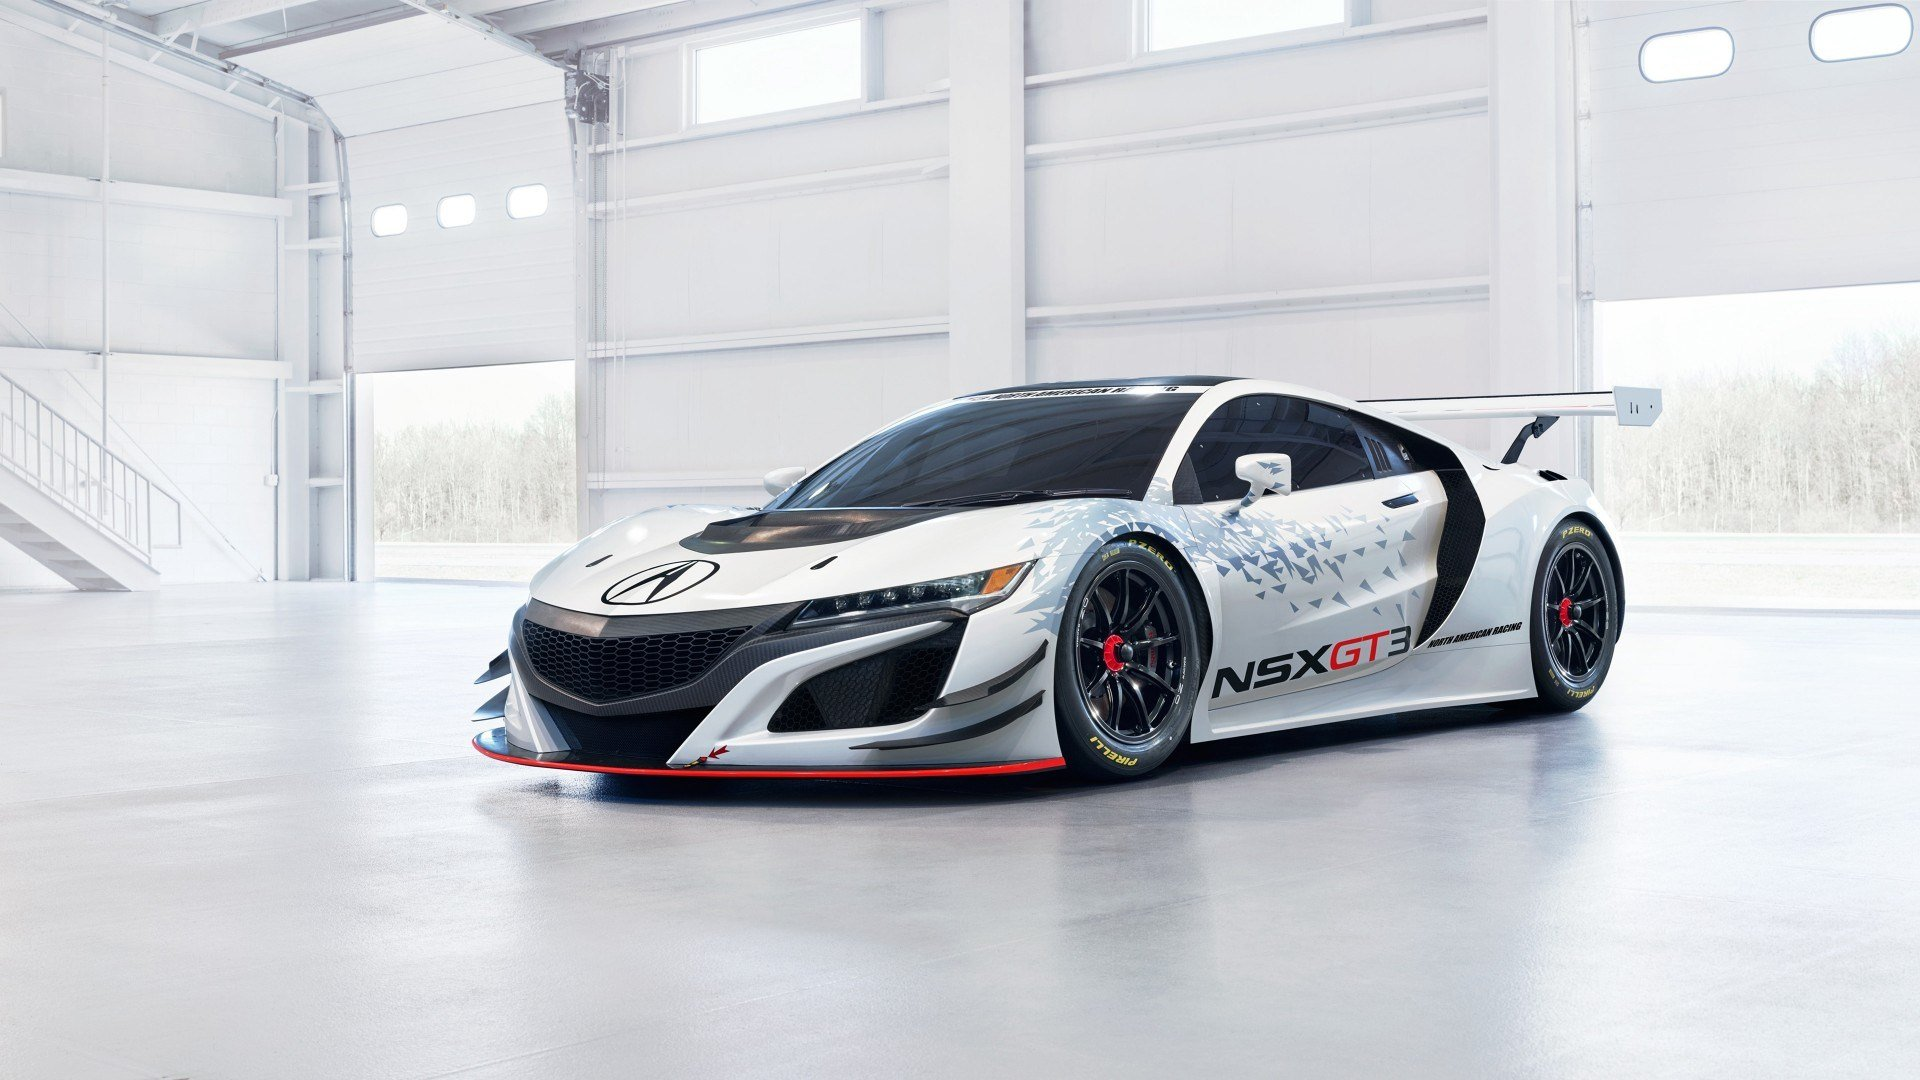 Latest Honda Acura Nsx Gt3 4K Wallpaper Hd Car Wallpapers Id Free Download